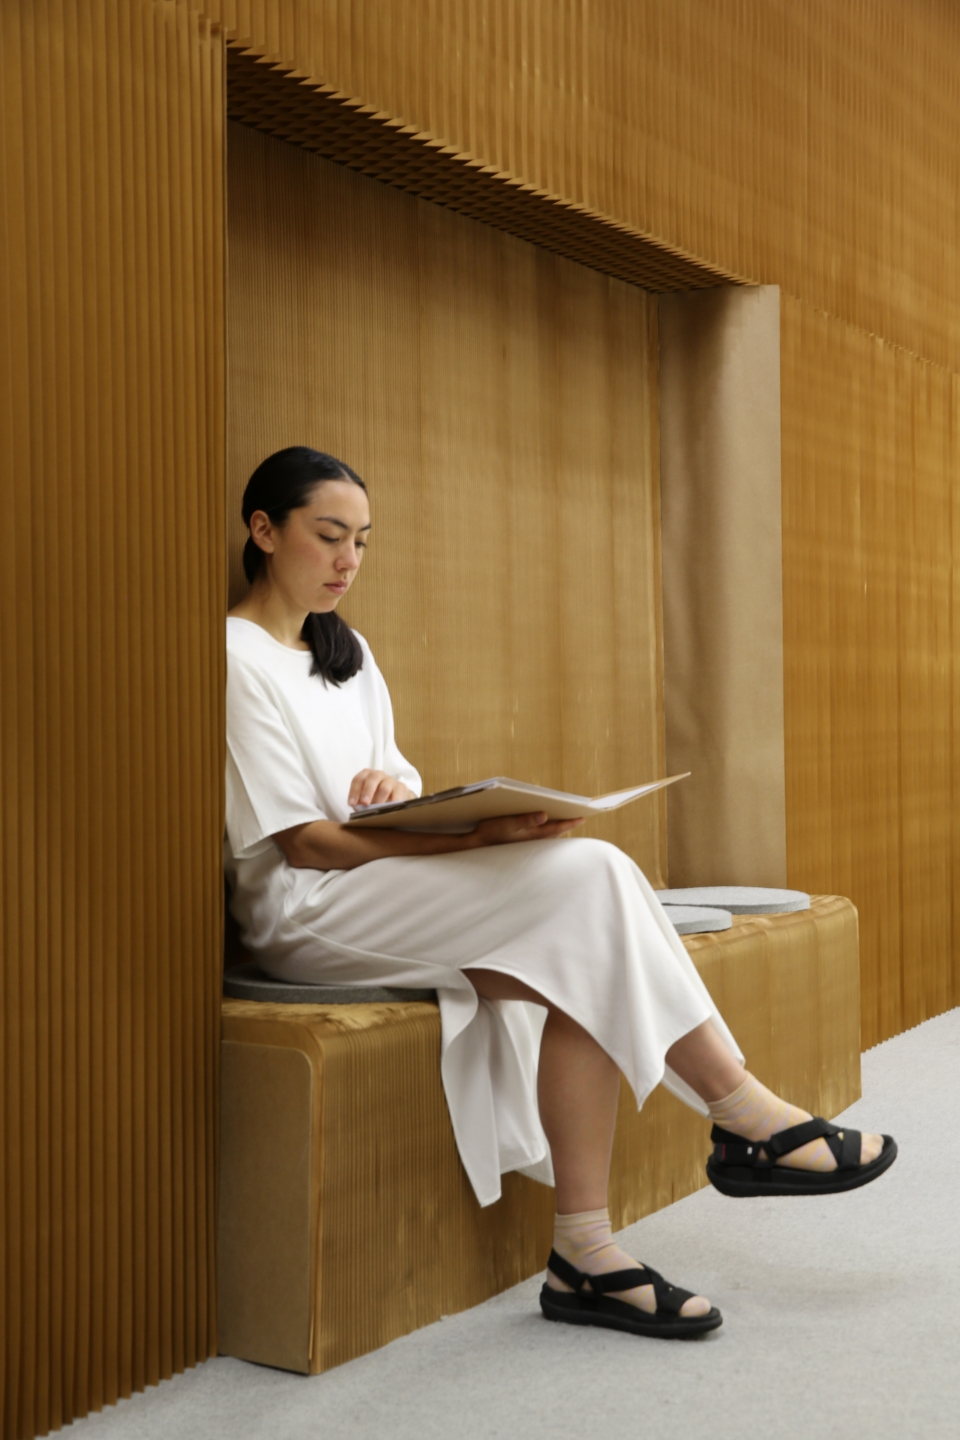 a woman sits and reads on a benchwall recessed into other softwalls